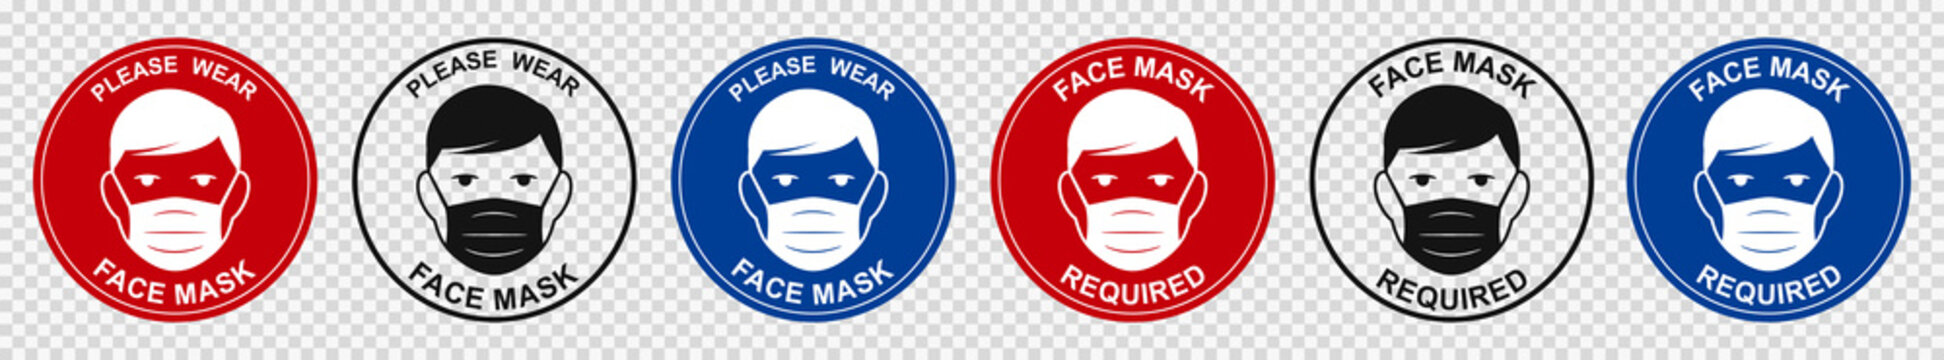 Face mask required sign. Attention do not enter without a face mask. Human wearing medical mask icon, protecting themselves against infection. Coronavirus - COVID-19, virus contamination - vector